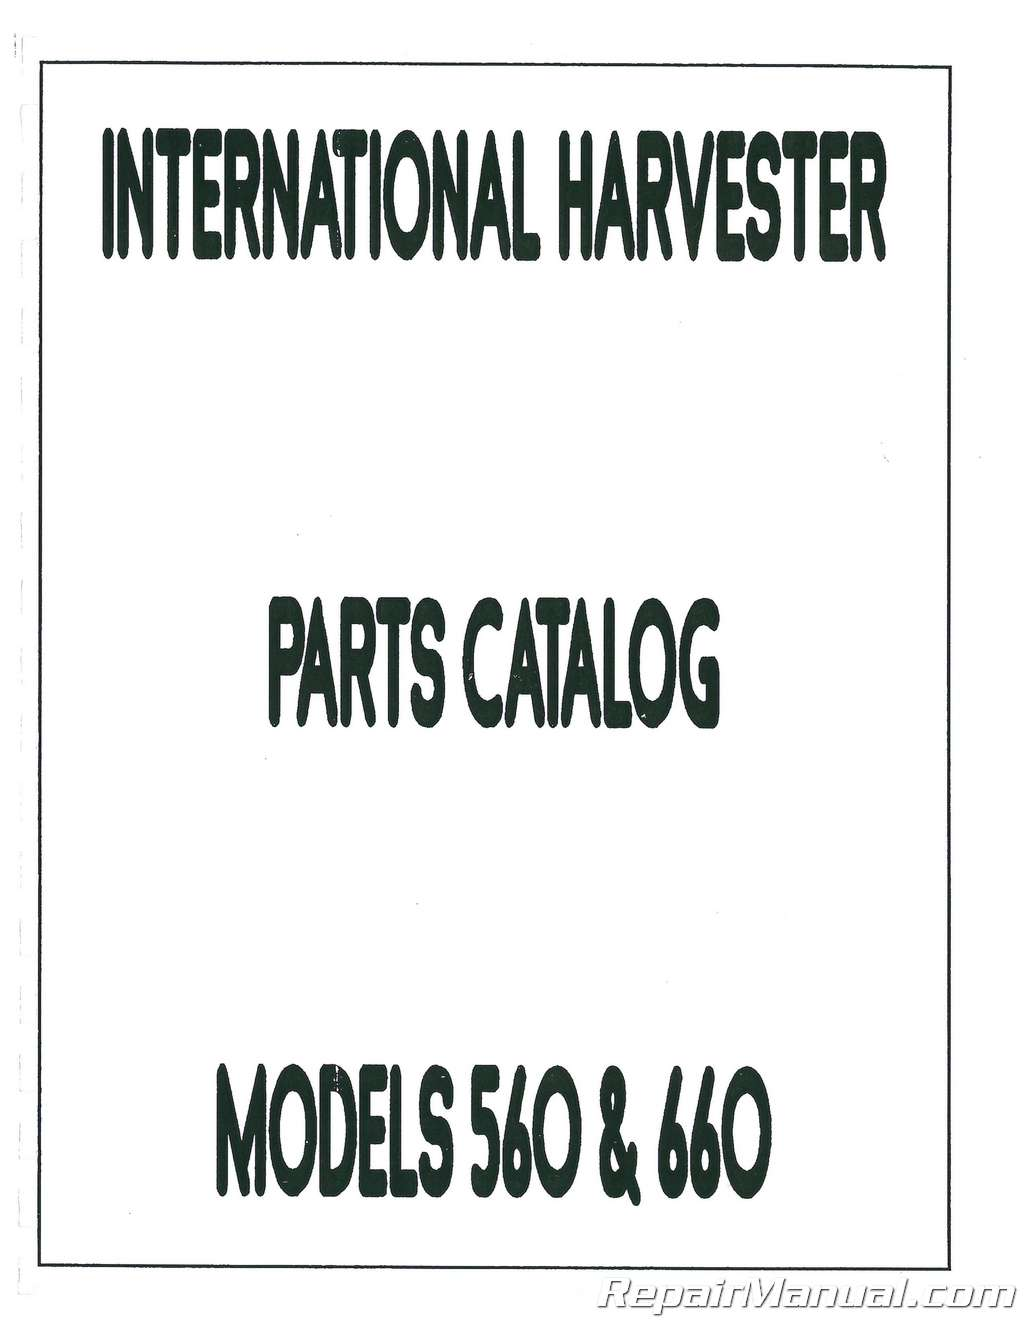 International Harvester 560 660 Parts Manual